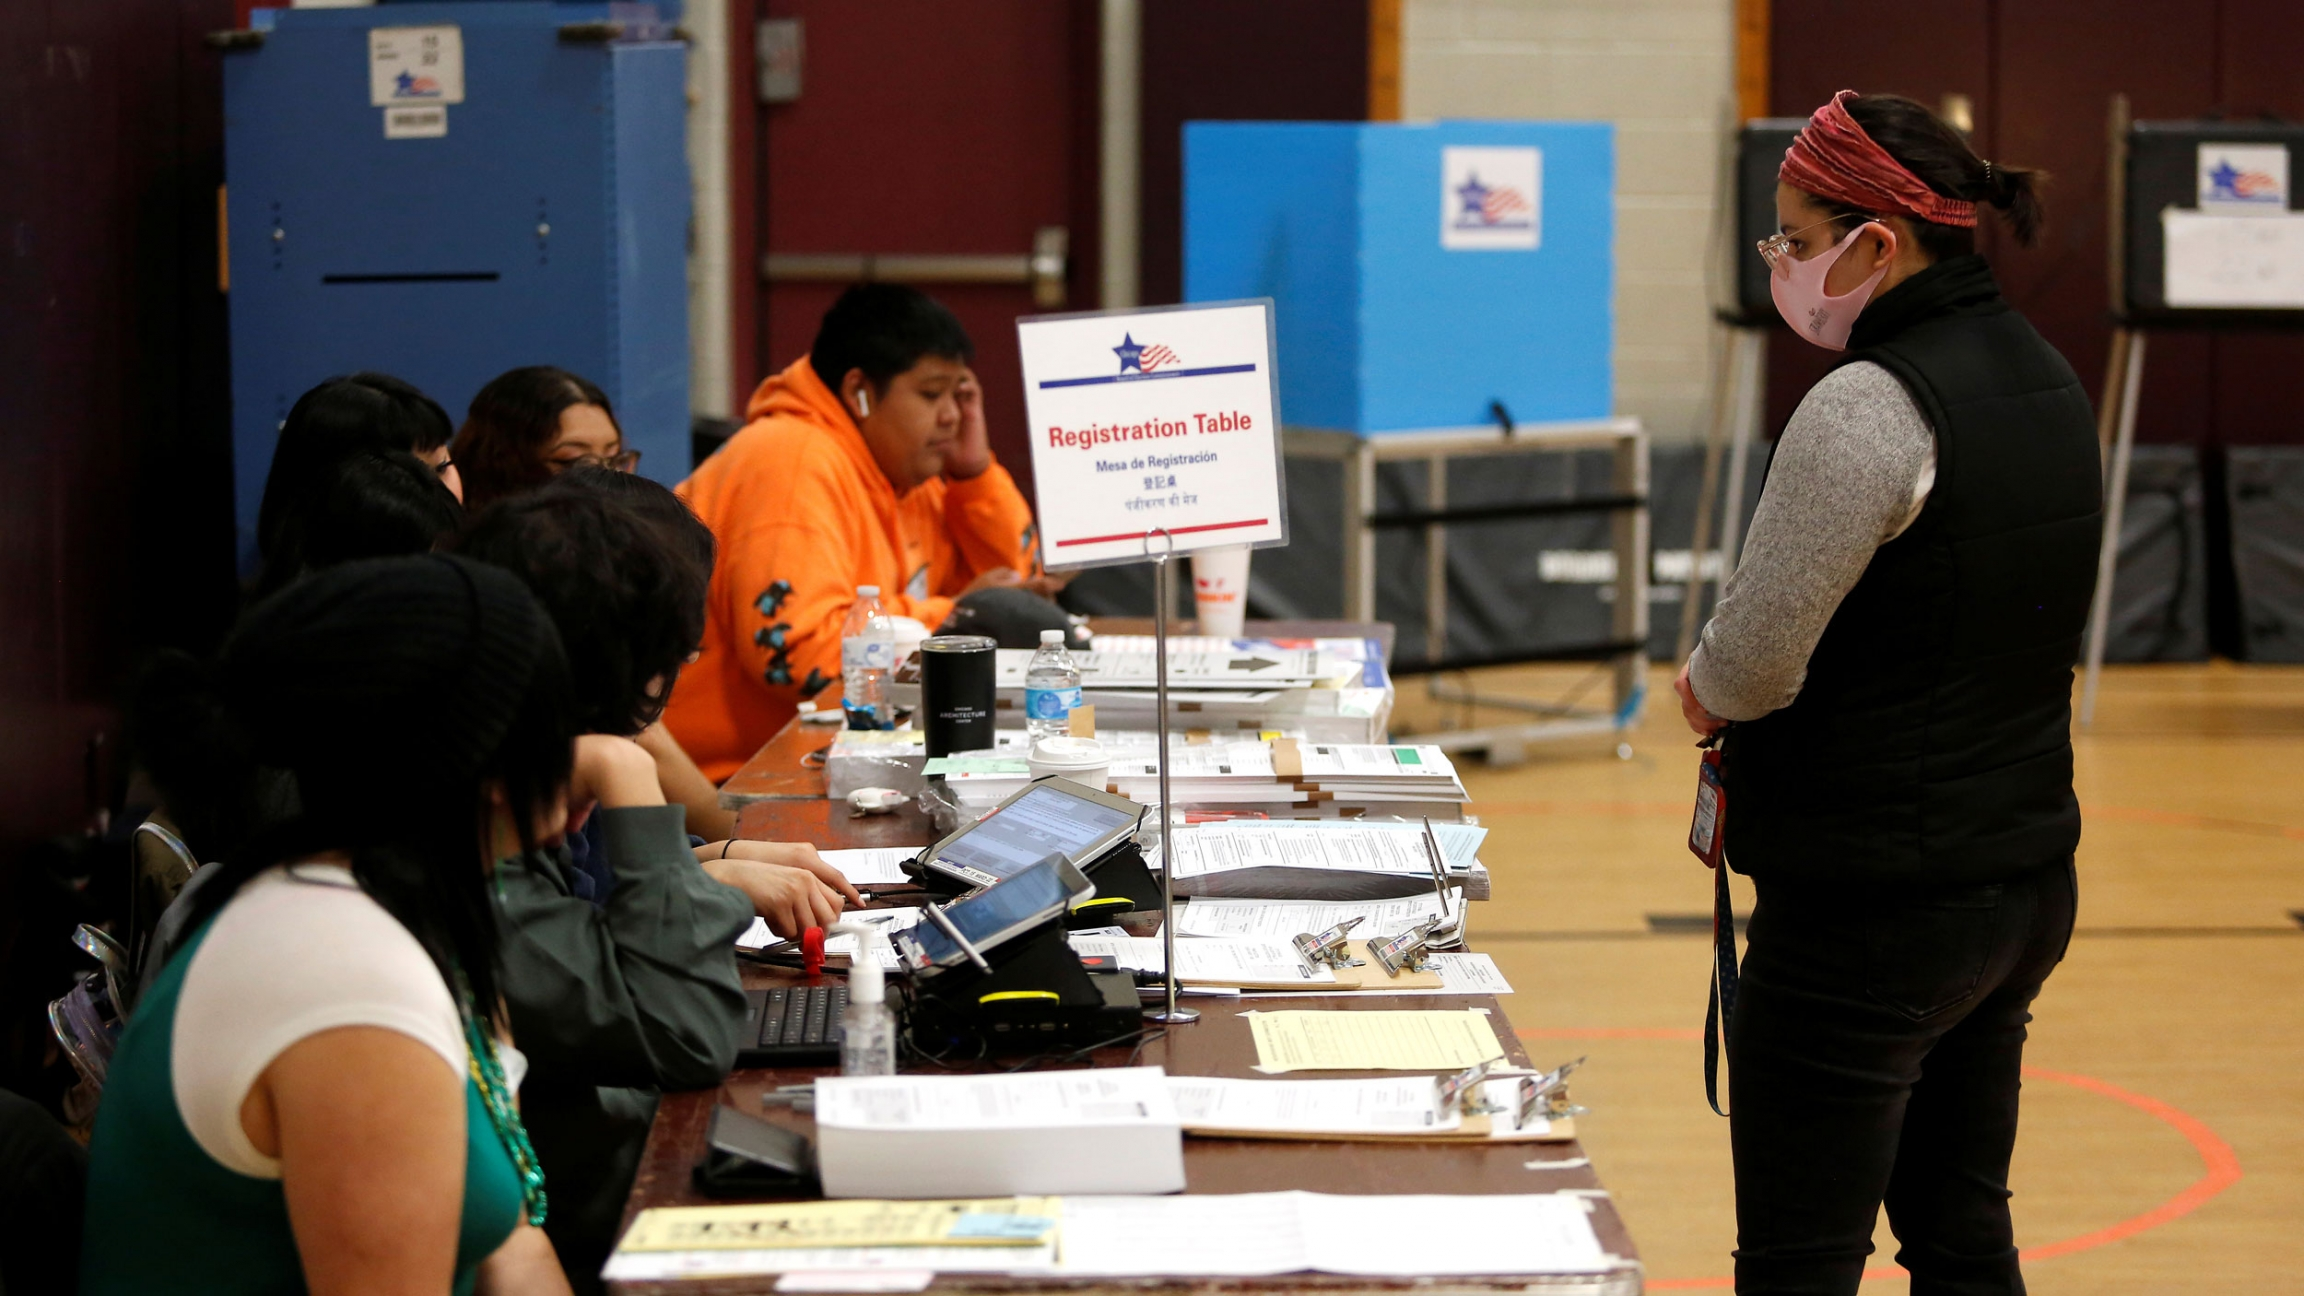 A voter stands at the registration table before receiving their ballot during the Democratic presidential primary election at Madero Middle School in Chicago, Illinois, March 17, 2020.